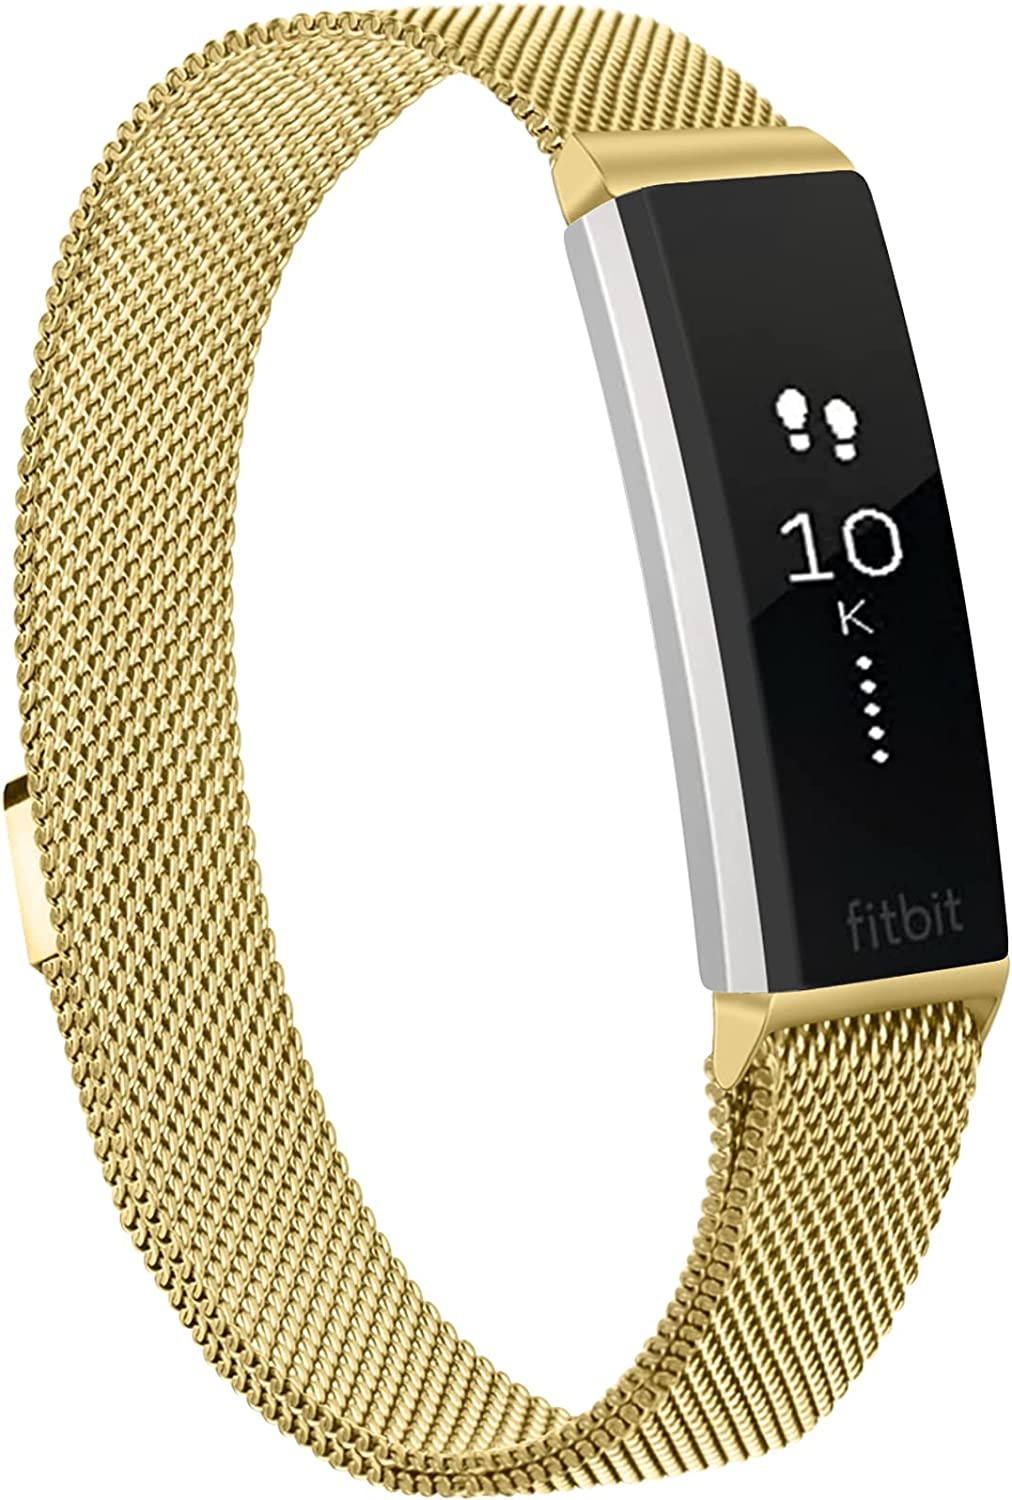 Meliya Metal Bands for Fitbit Alta & Fitbit Alta HR, Stainless Steel Magnetic Lock Replacement Wristbands for Alta & Alta HR Women Men Small Large (Large, Gold)